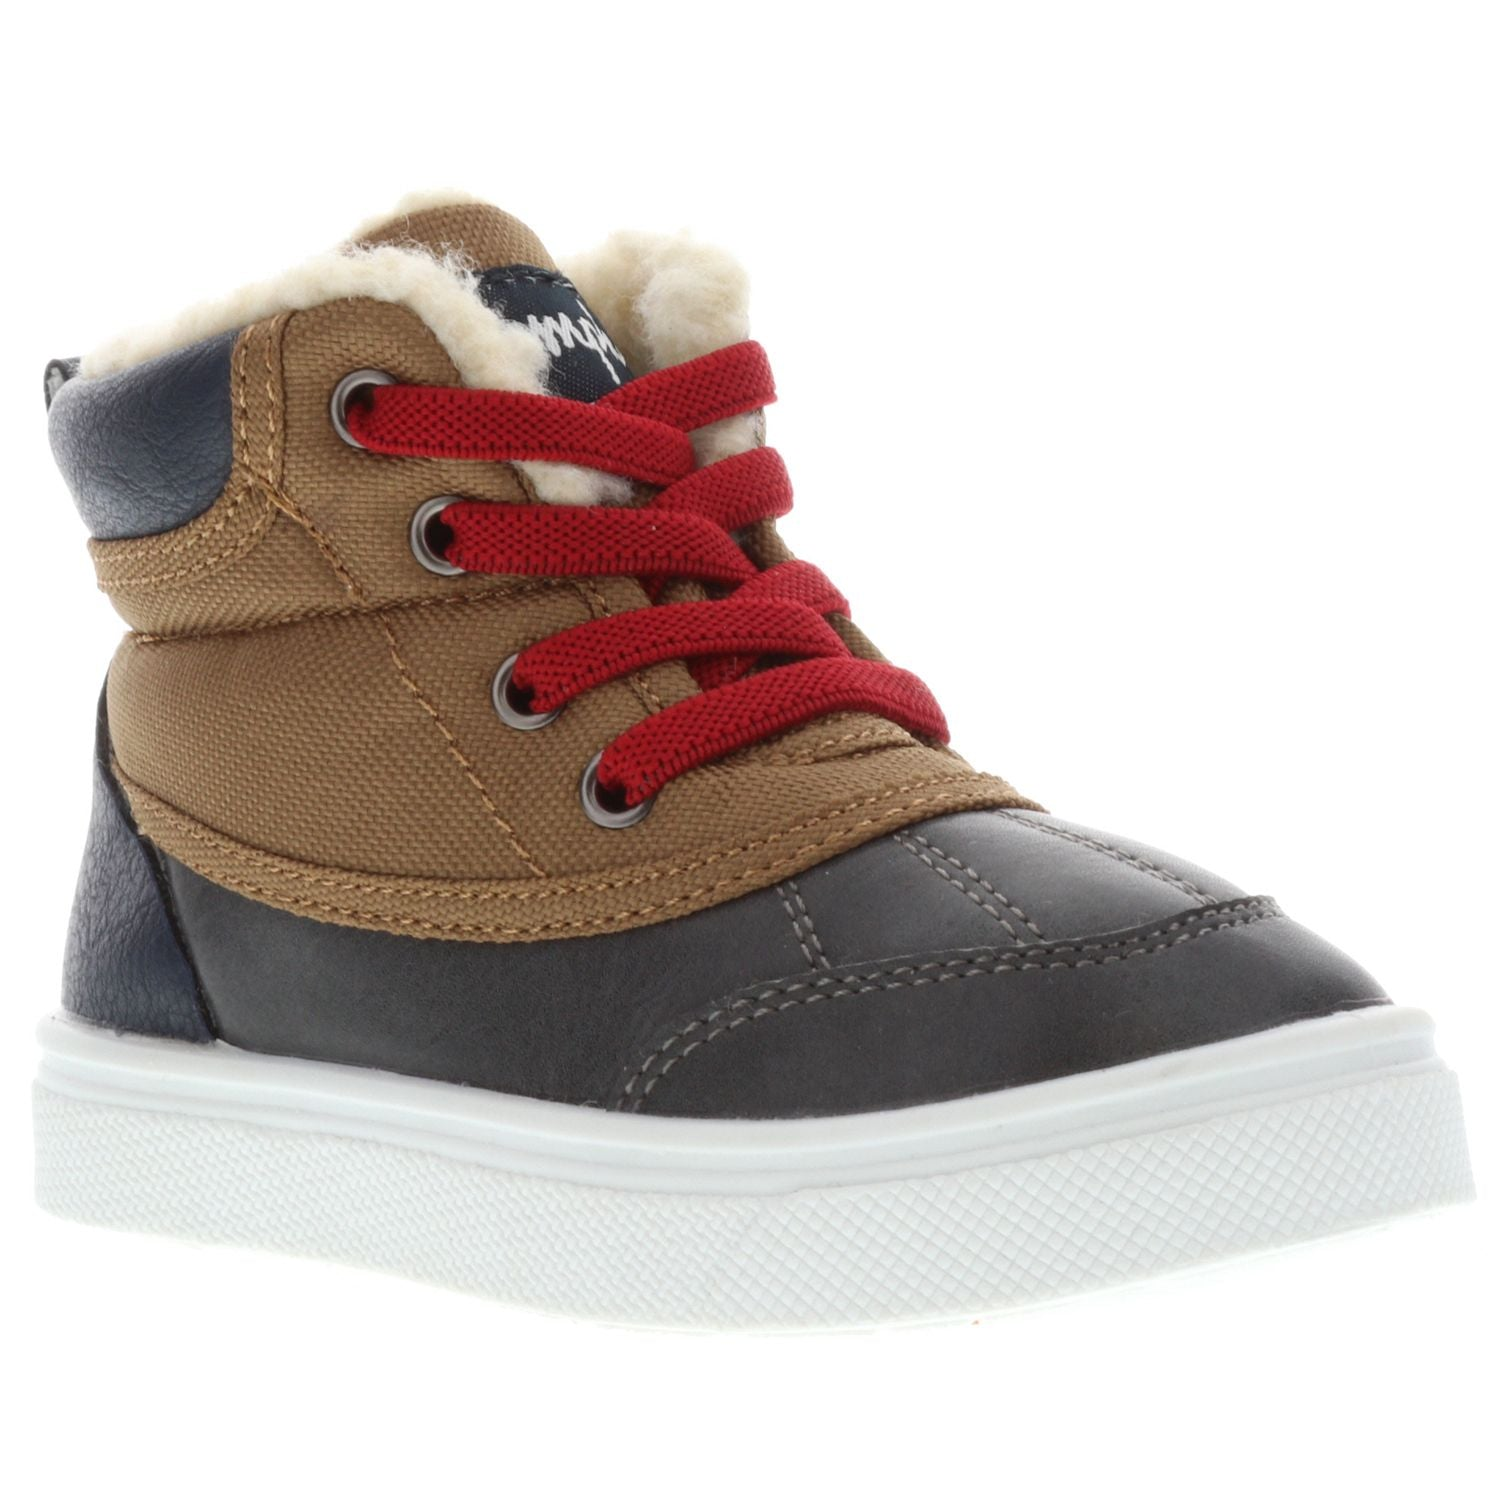 Oomphies Finn Young Boys Shoes 5-12